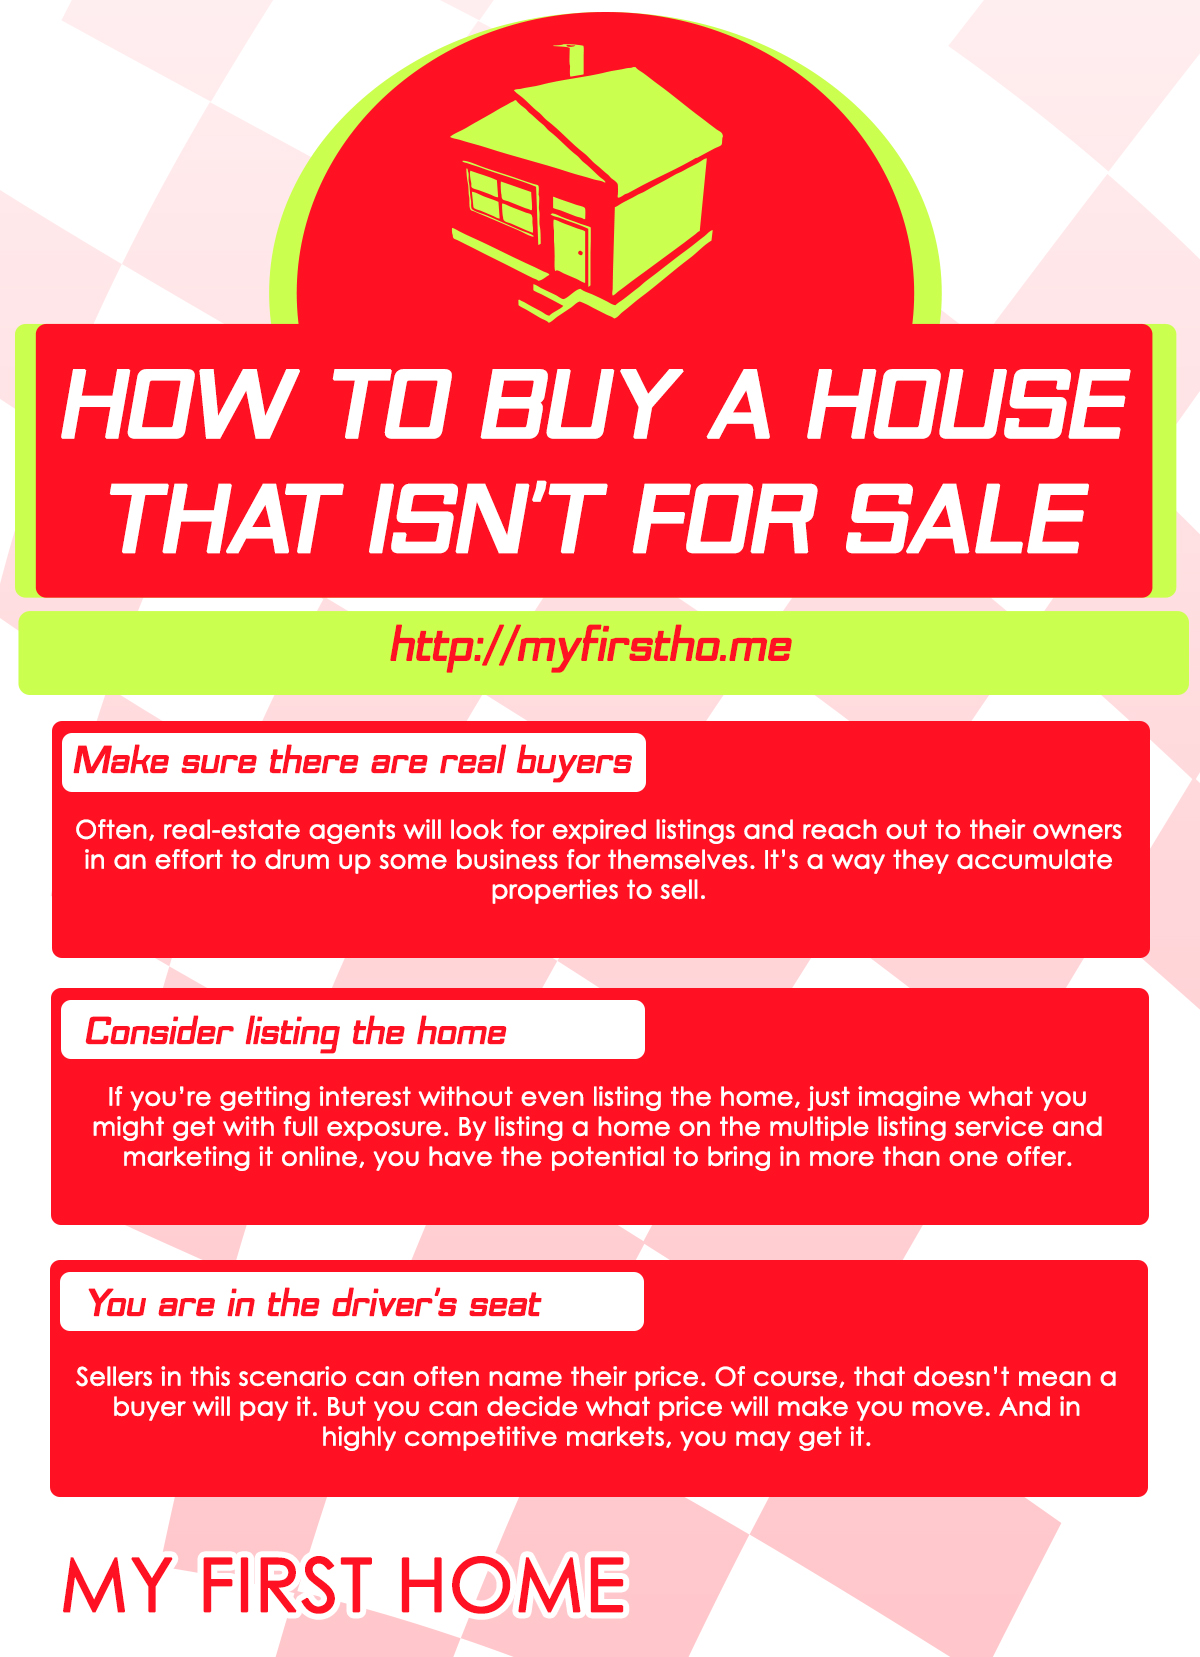 How to buy a house that isn't for sale